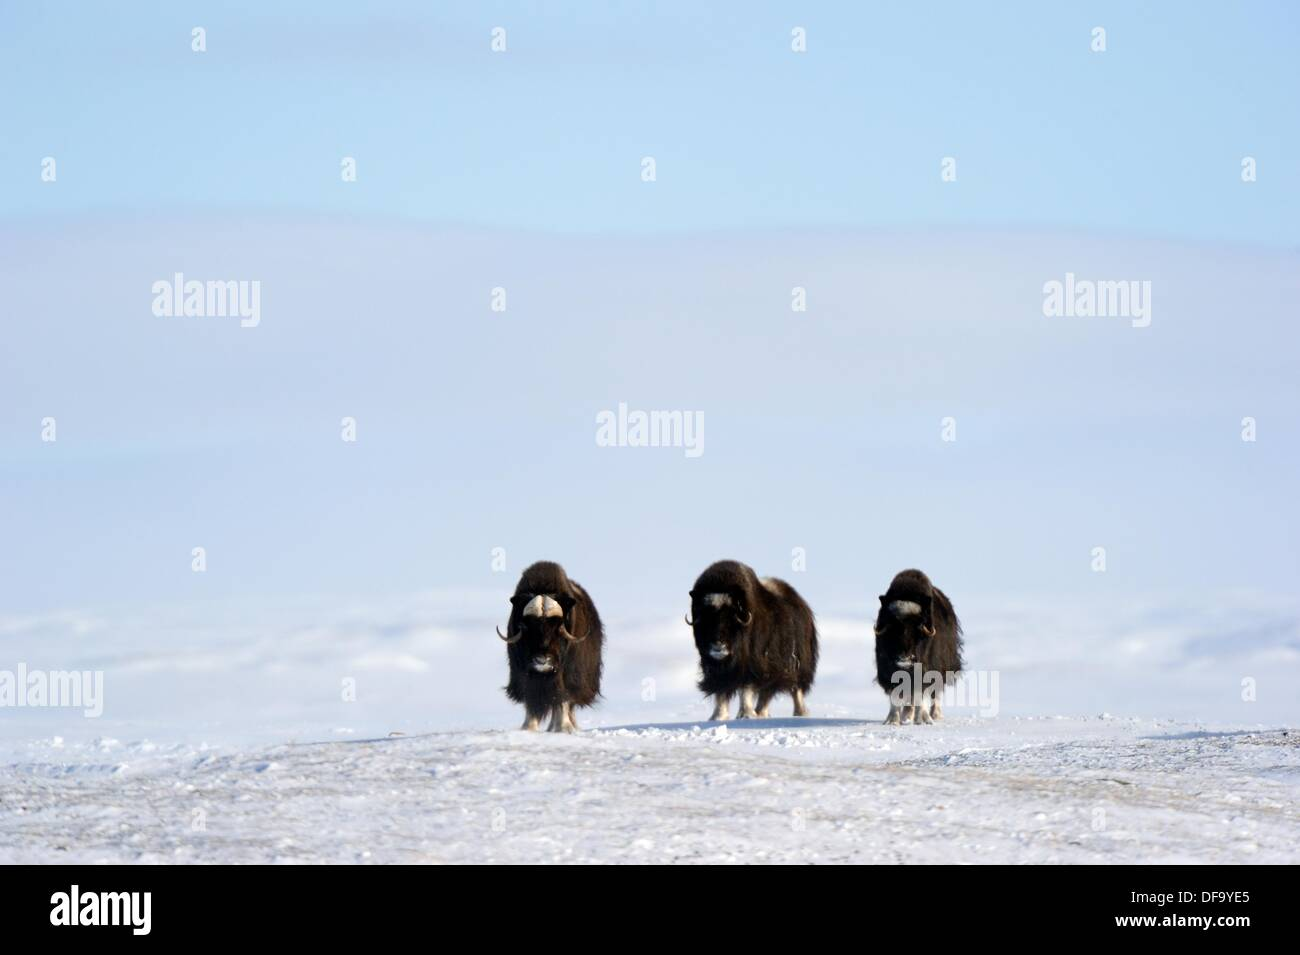 Three Muskox in snow Ovibos moschatus Banks Island, North West Territories, Canada - Stock Image